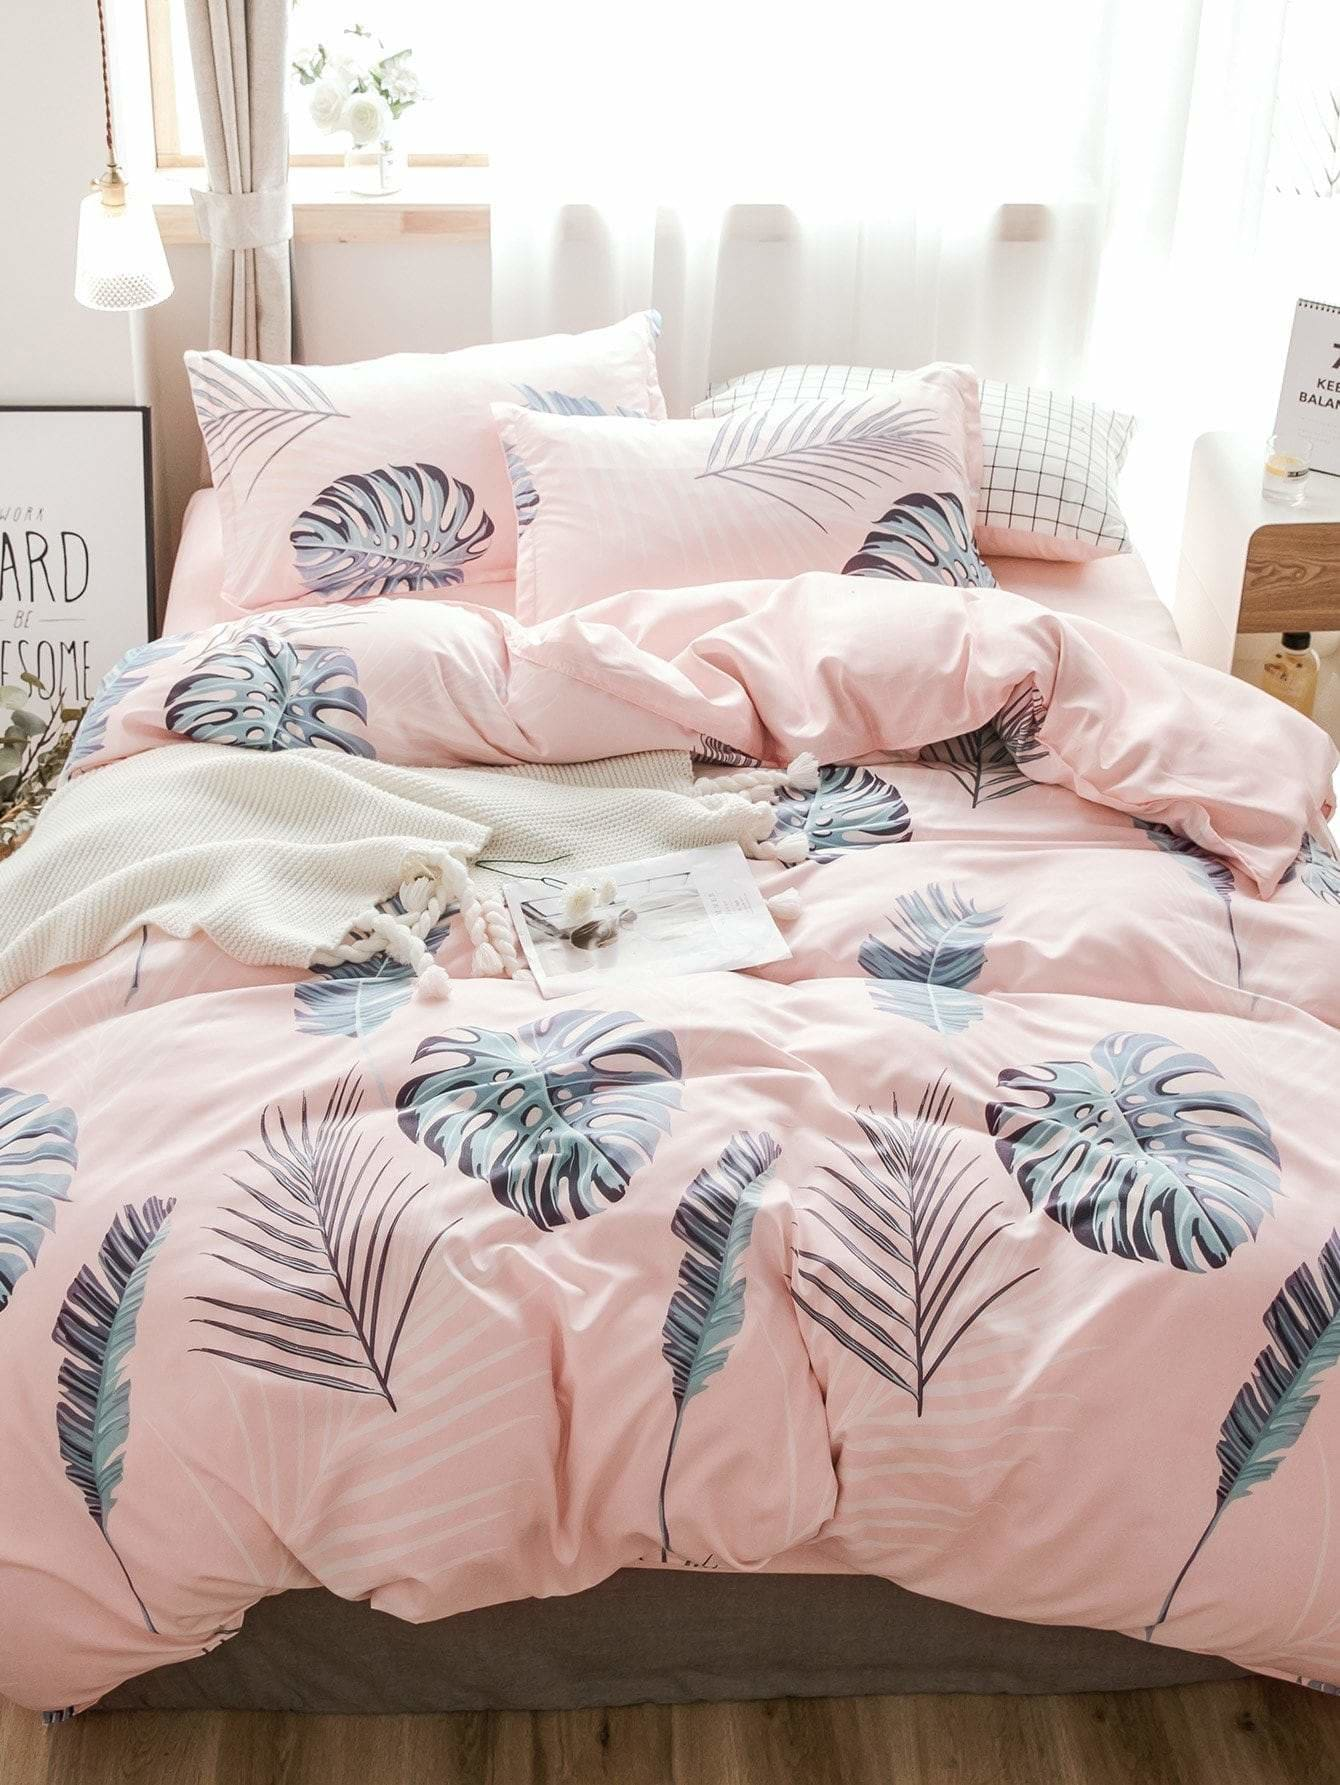 Leaf Print Duvet Cover 1 PC - Bedding Sets